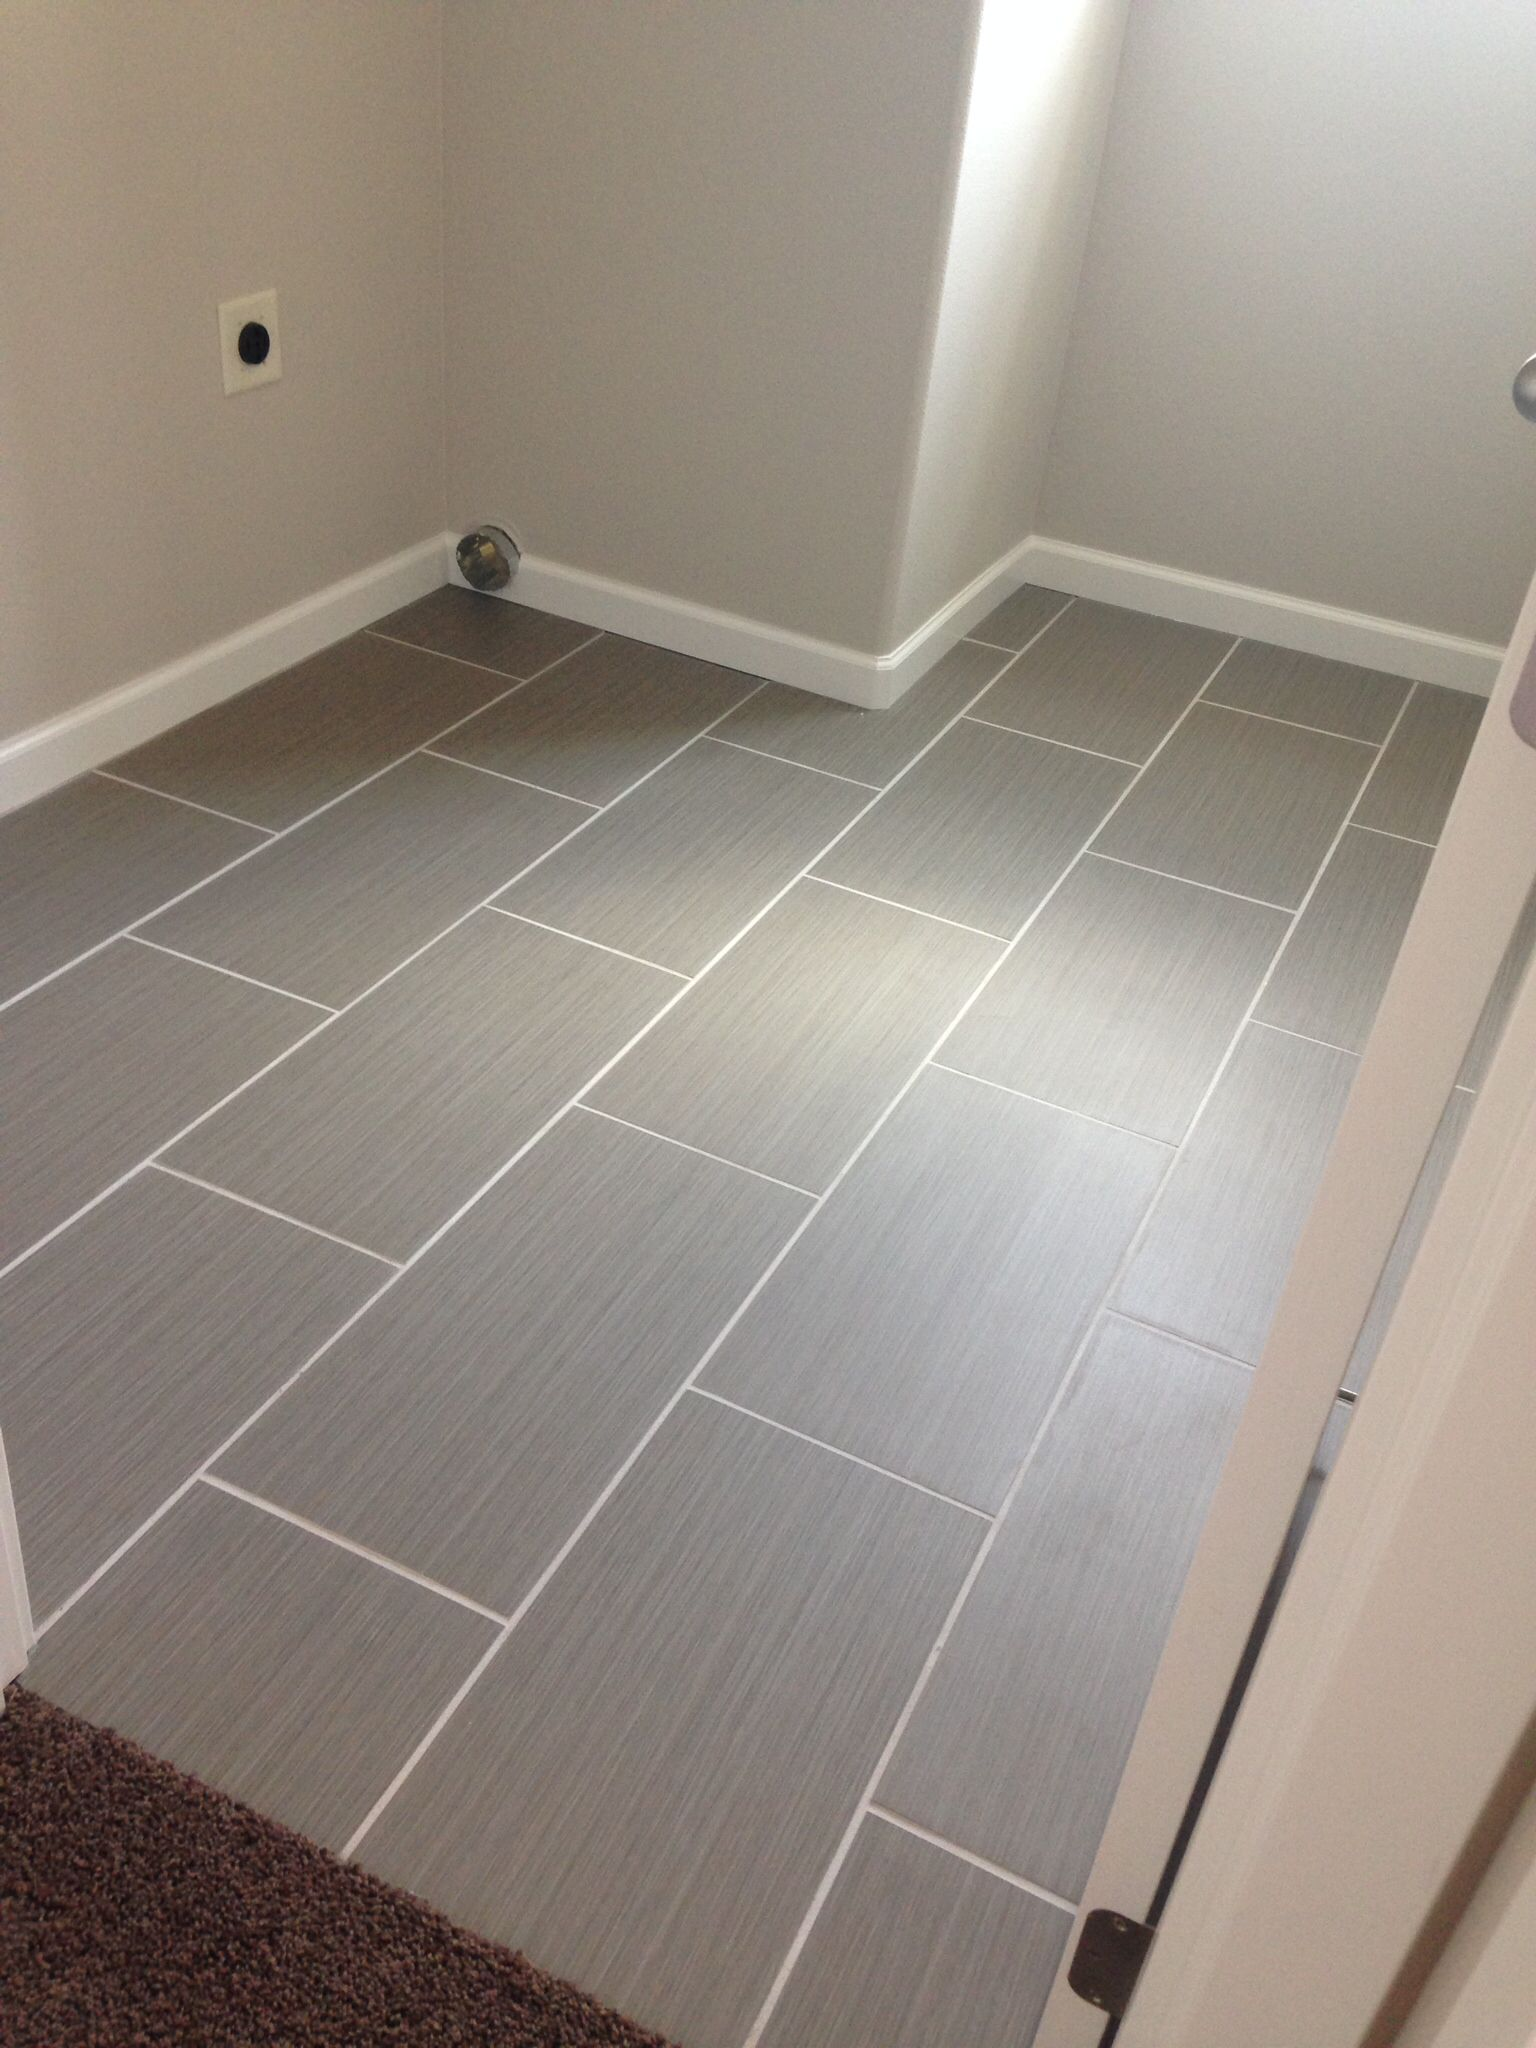 Gray tile from costco 721343 Neo Tile 1\'*2\' PORCELAIN Tile 10 sq ...